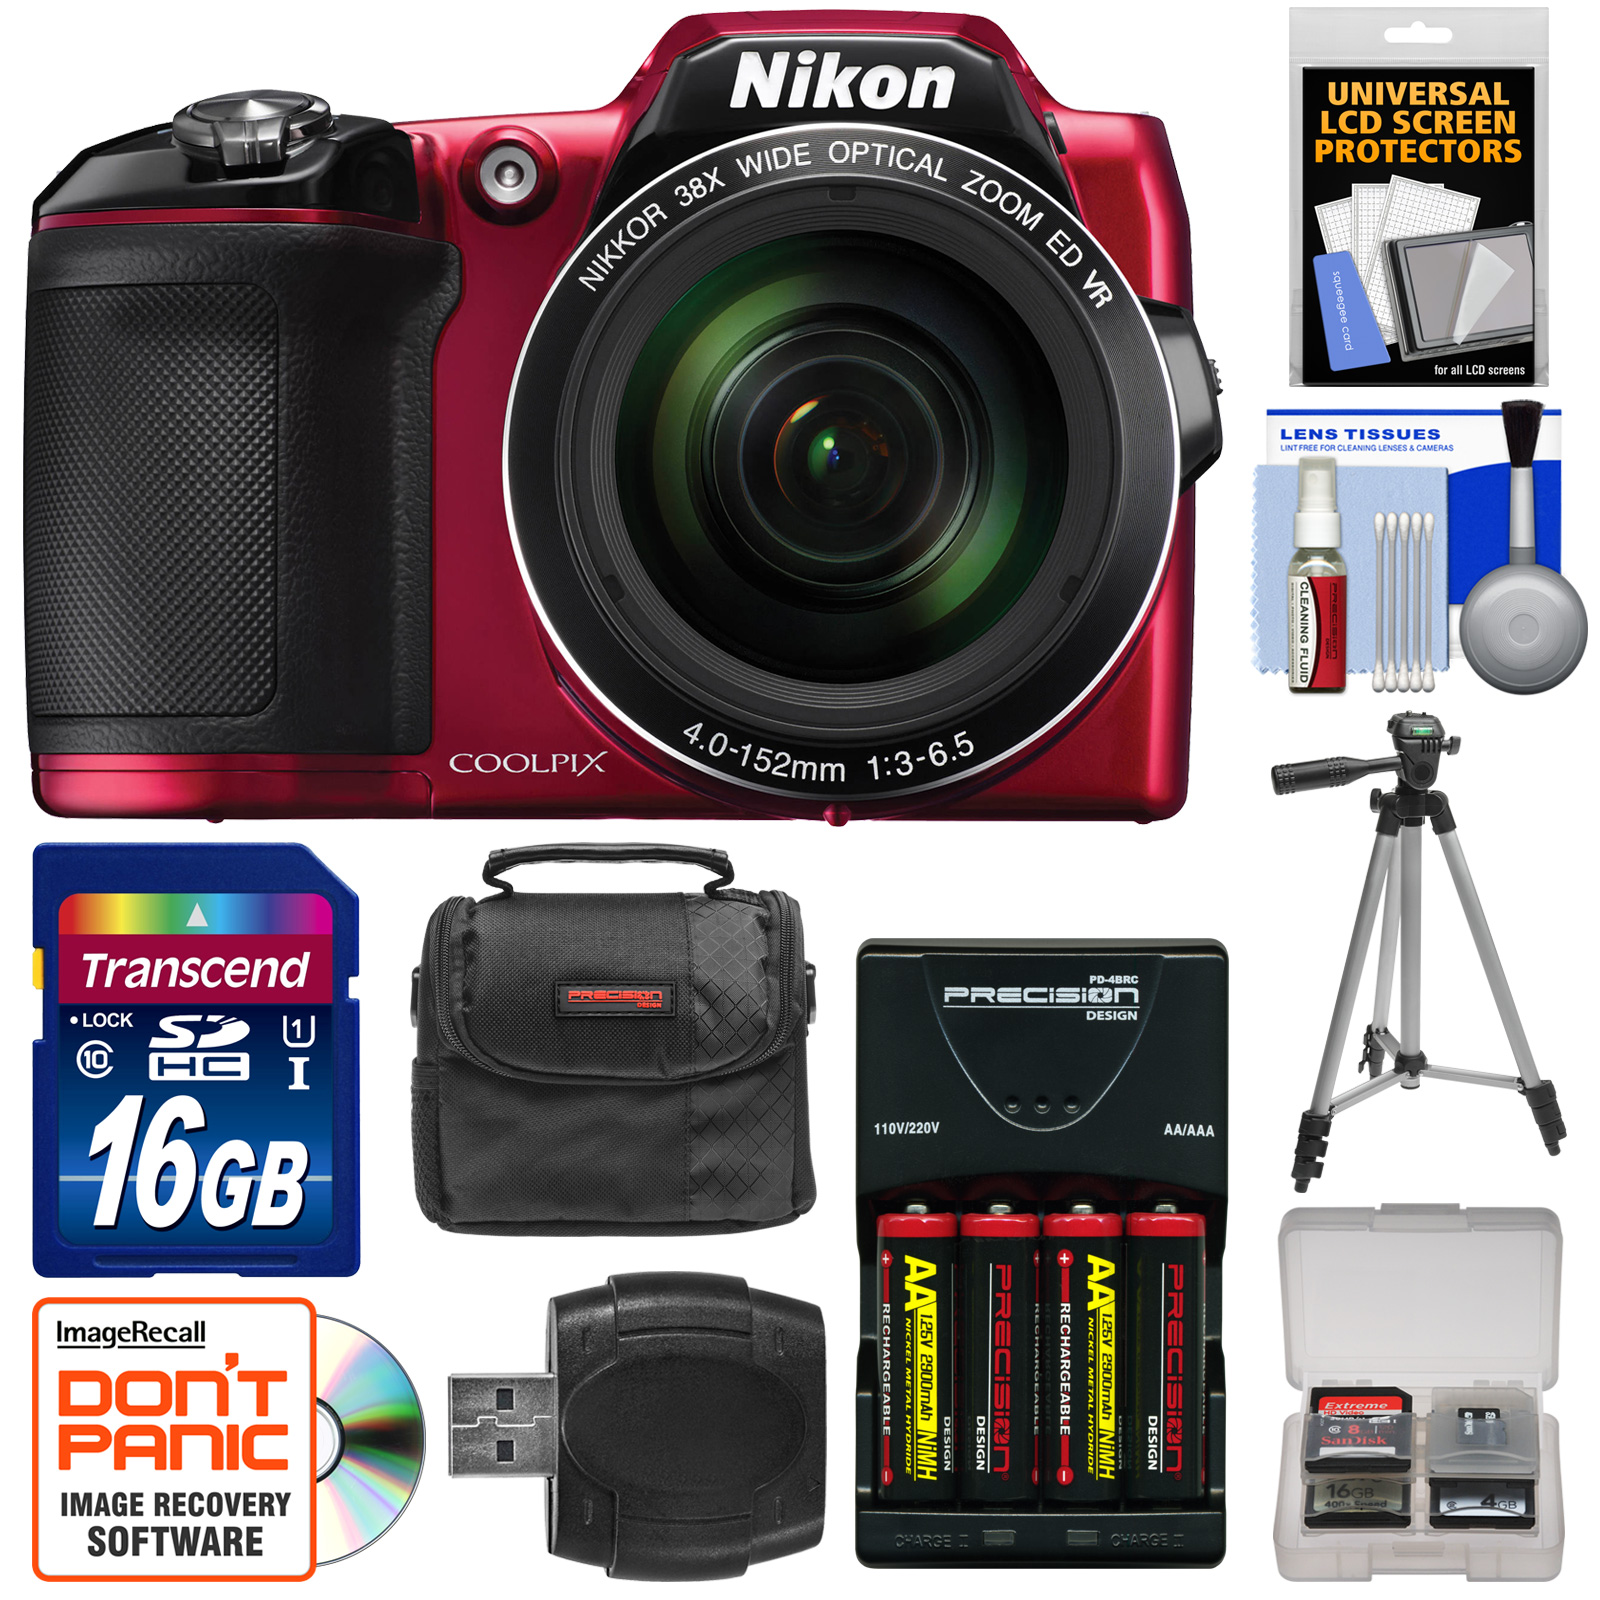 Nikon Coolpix L840 Wi-Fi Digital Camera (Red) - Factory Refurbished with 16GB Card + Batteries & Charger + Case + Tripod + Kit